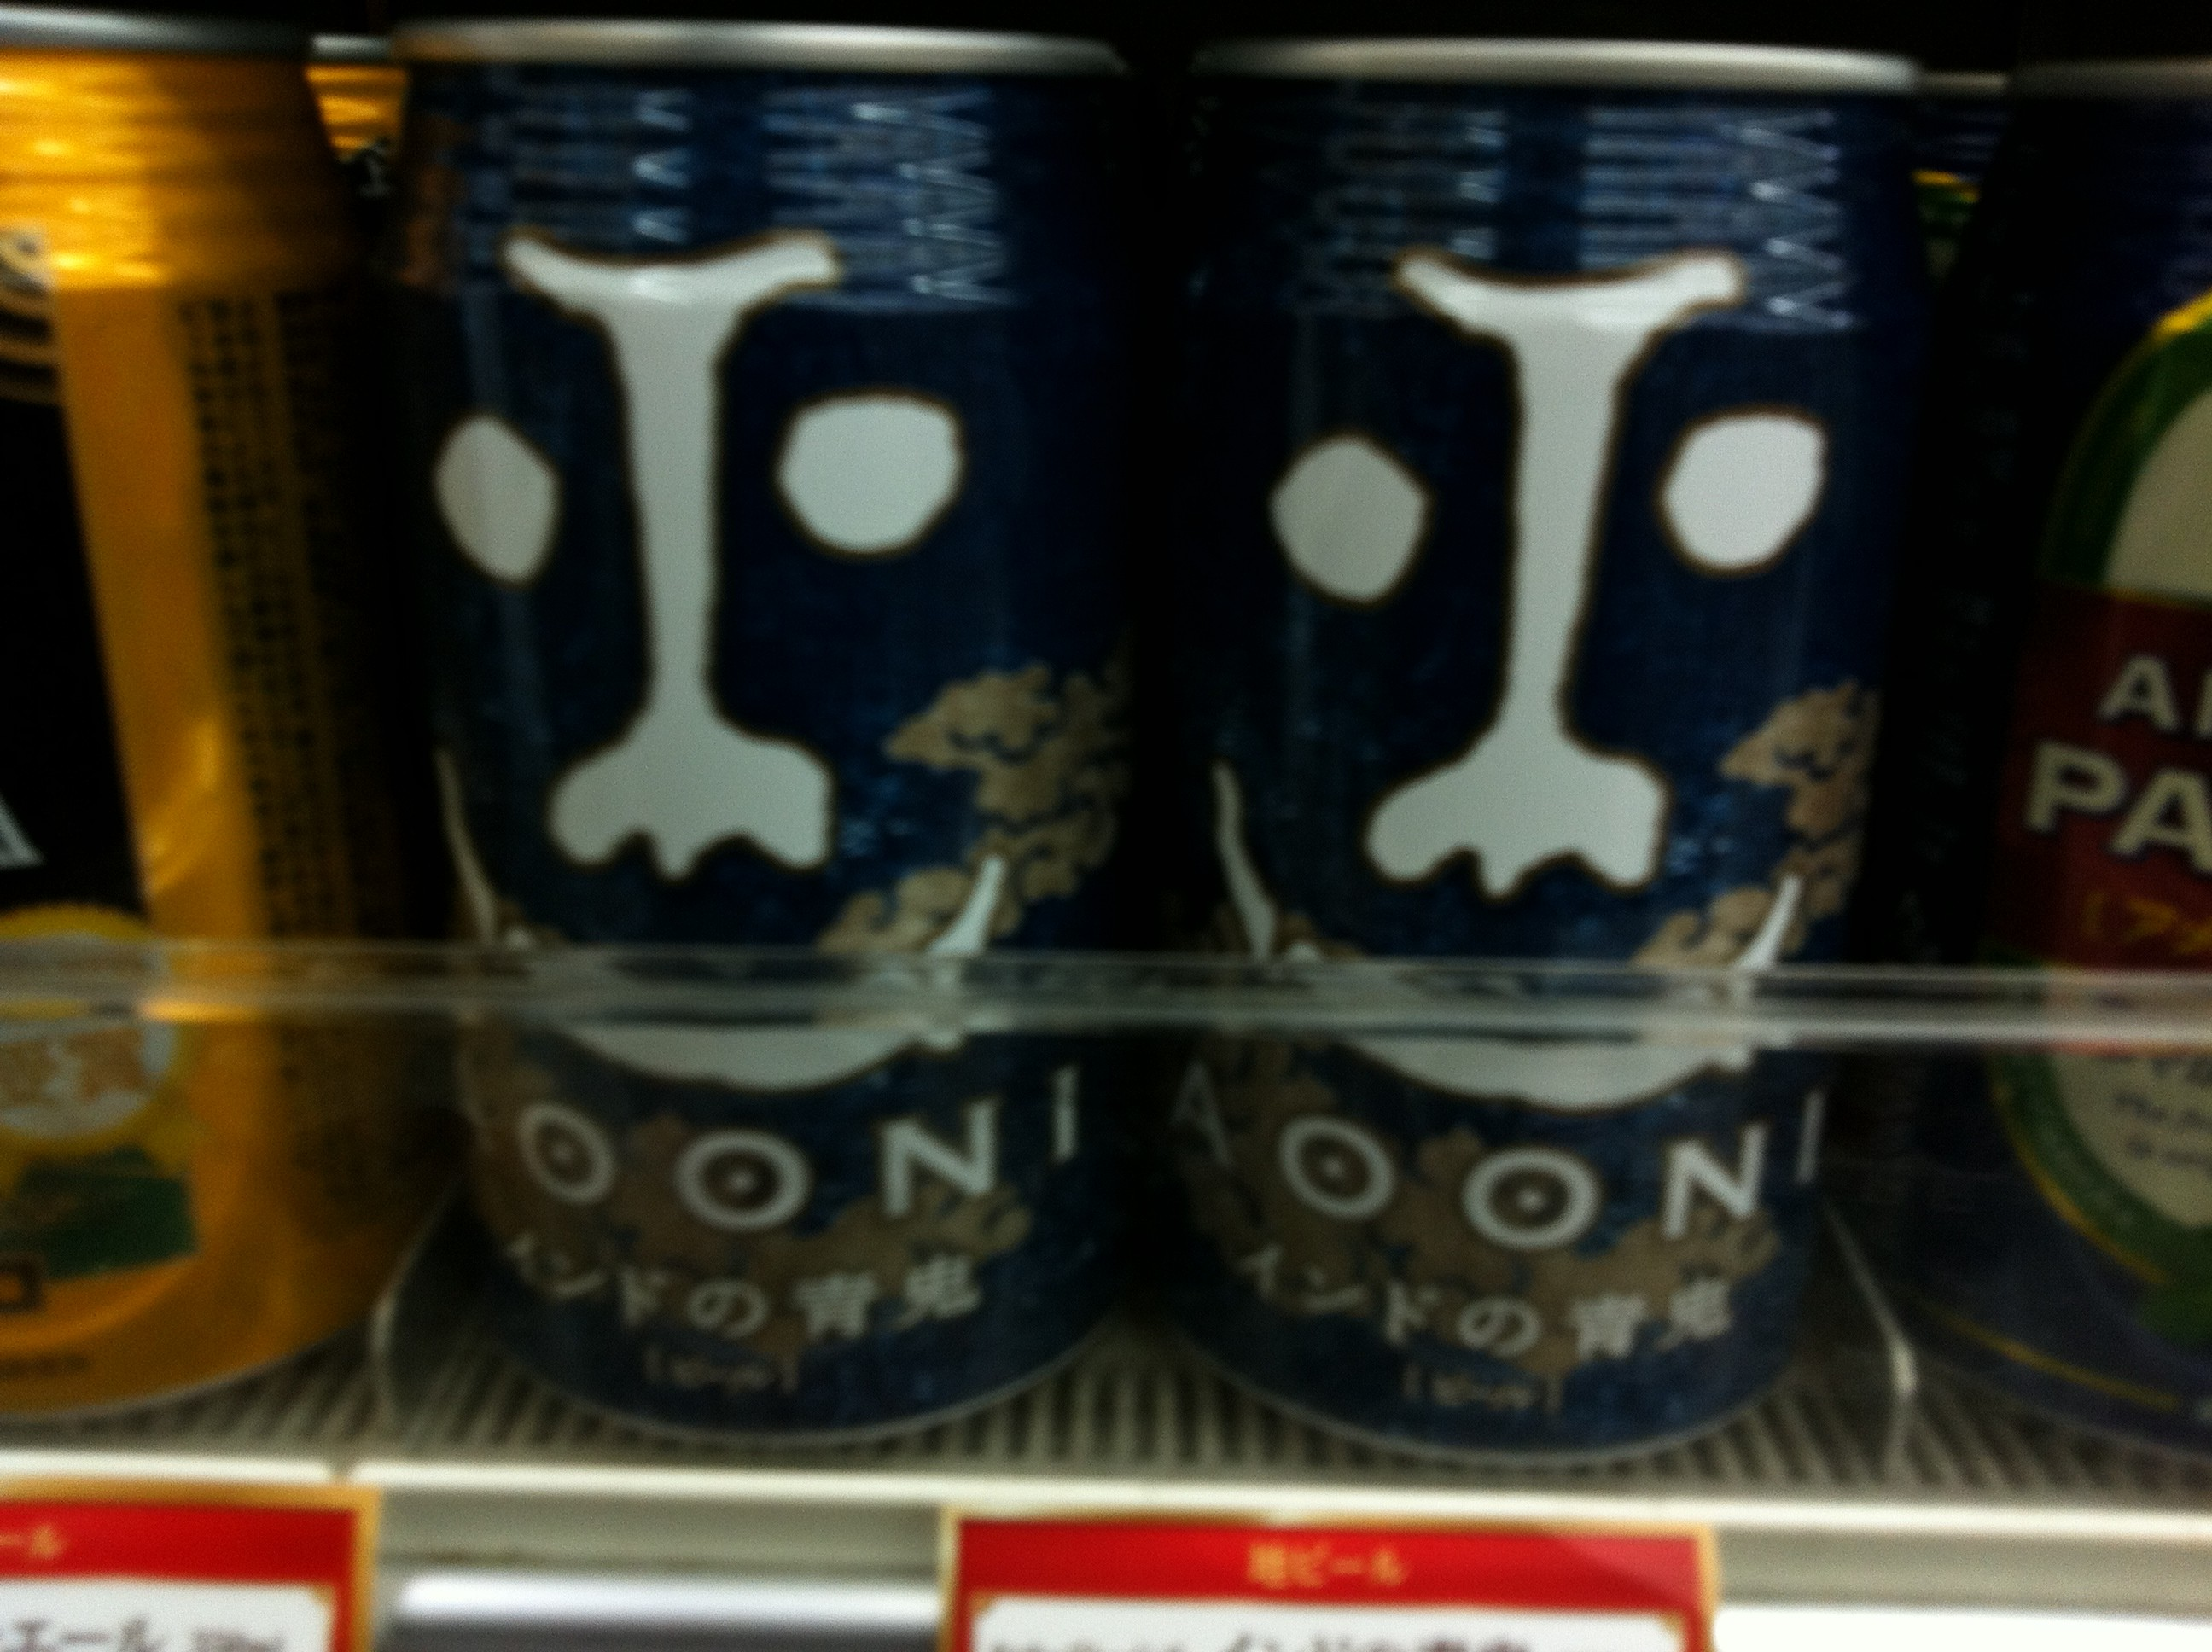 AOONI beer